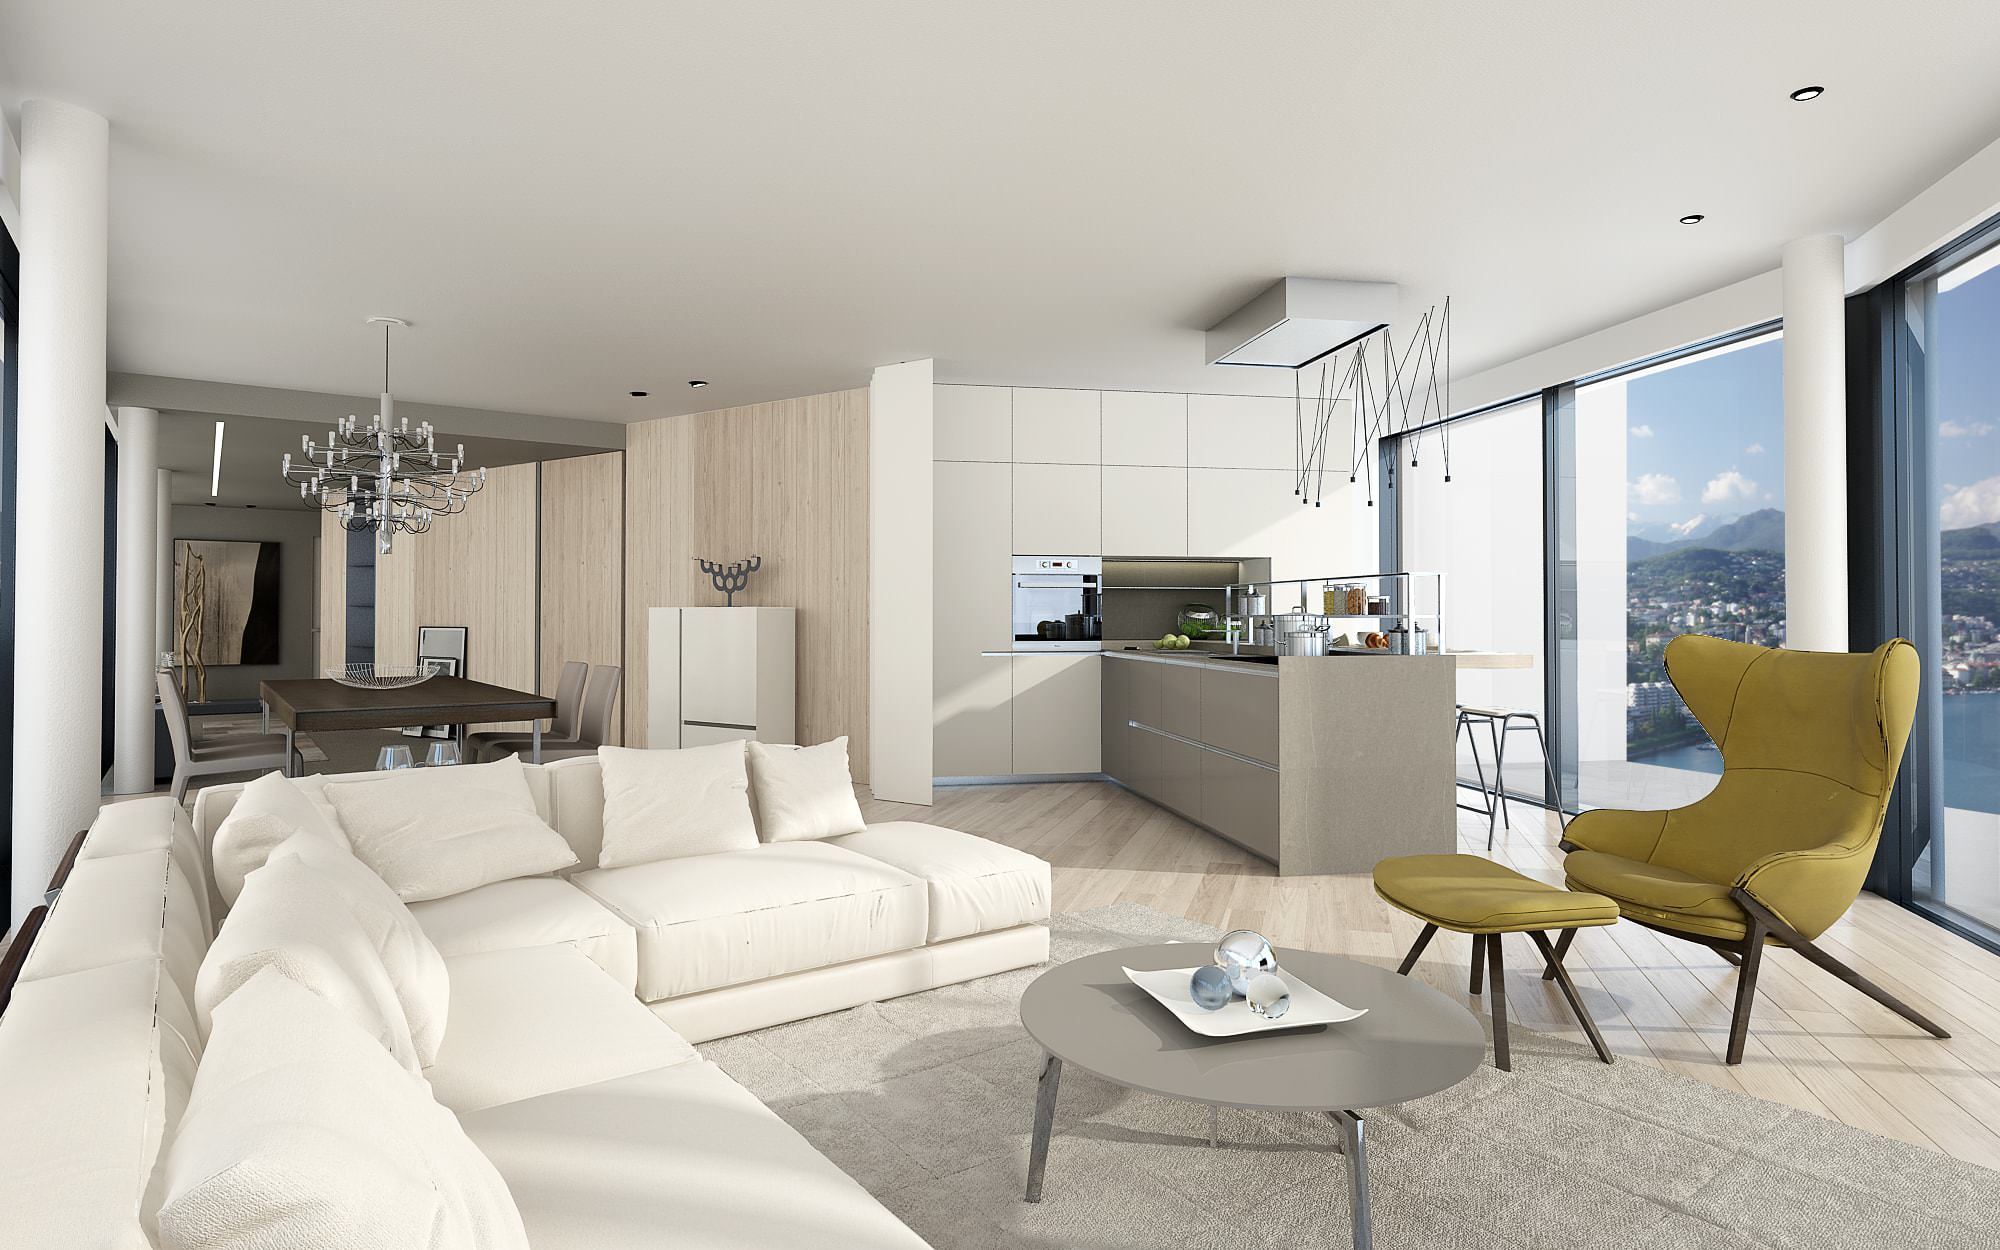 Interior design sofas penthouse Lugano Ticino Switzerland